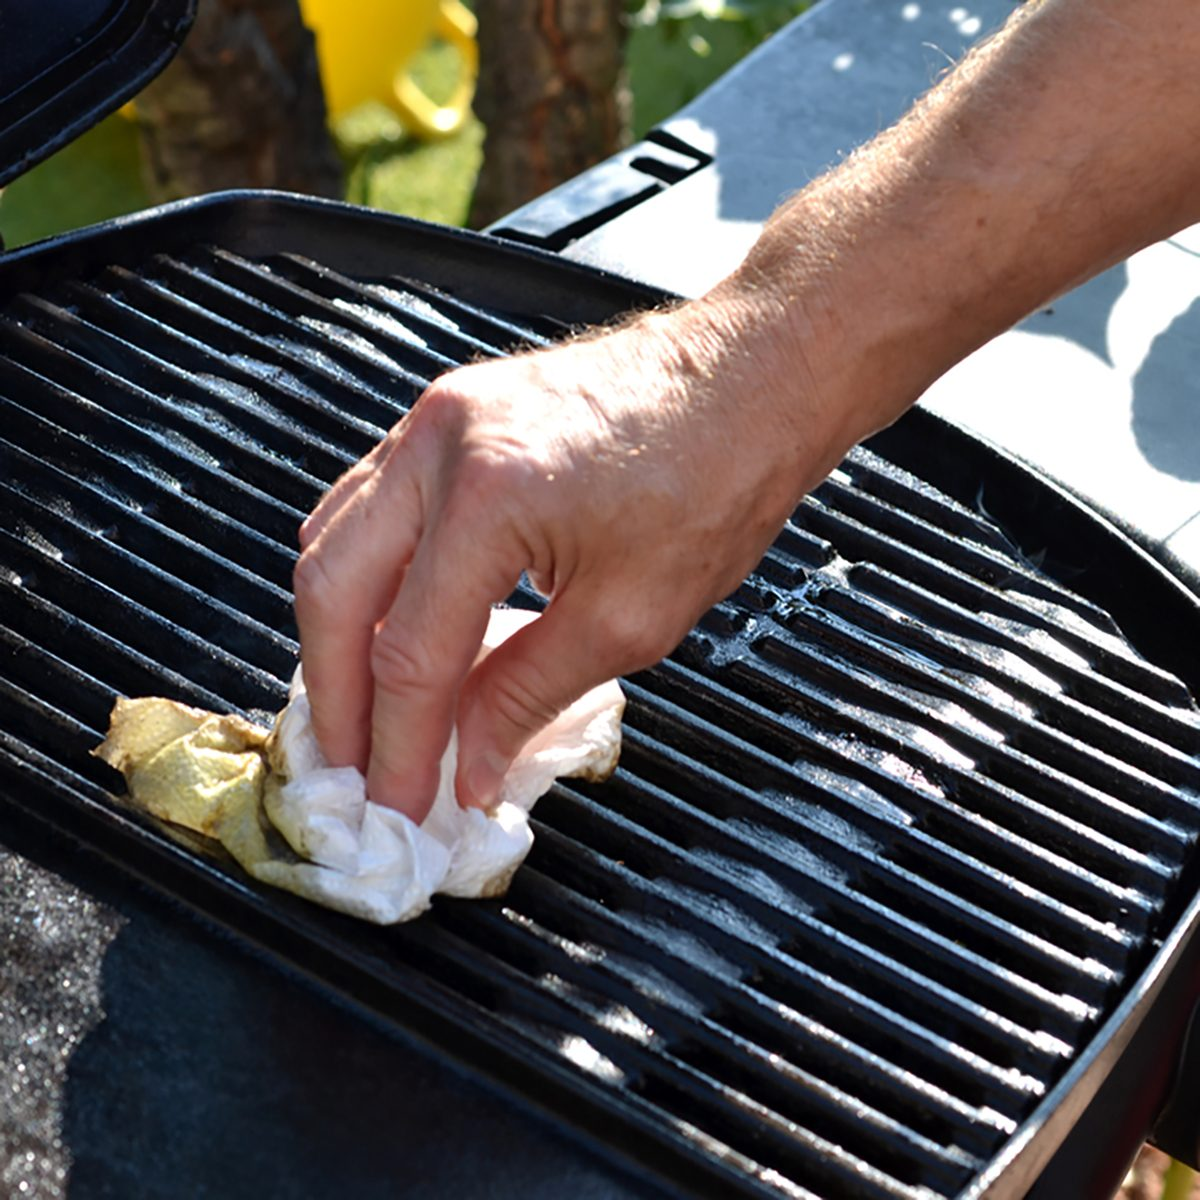 Cleaning the outdoor grill; Shutterstock ID 729824278